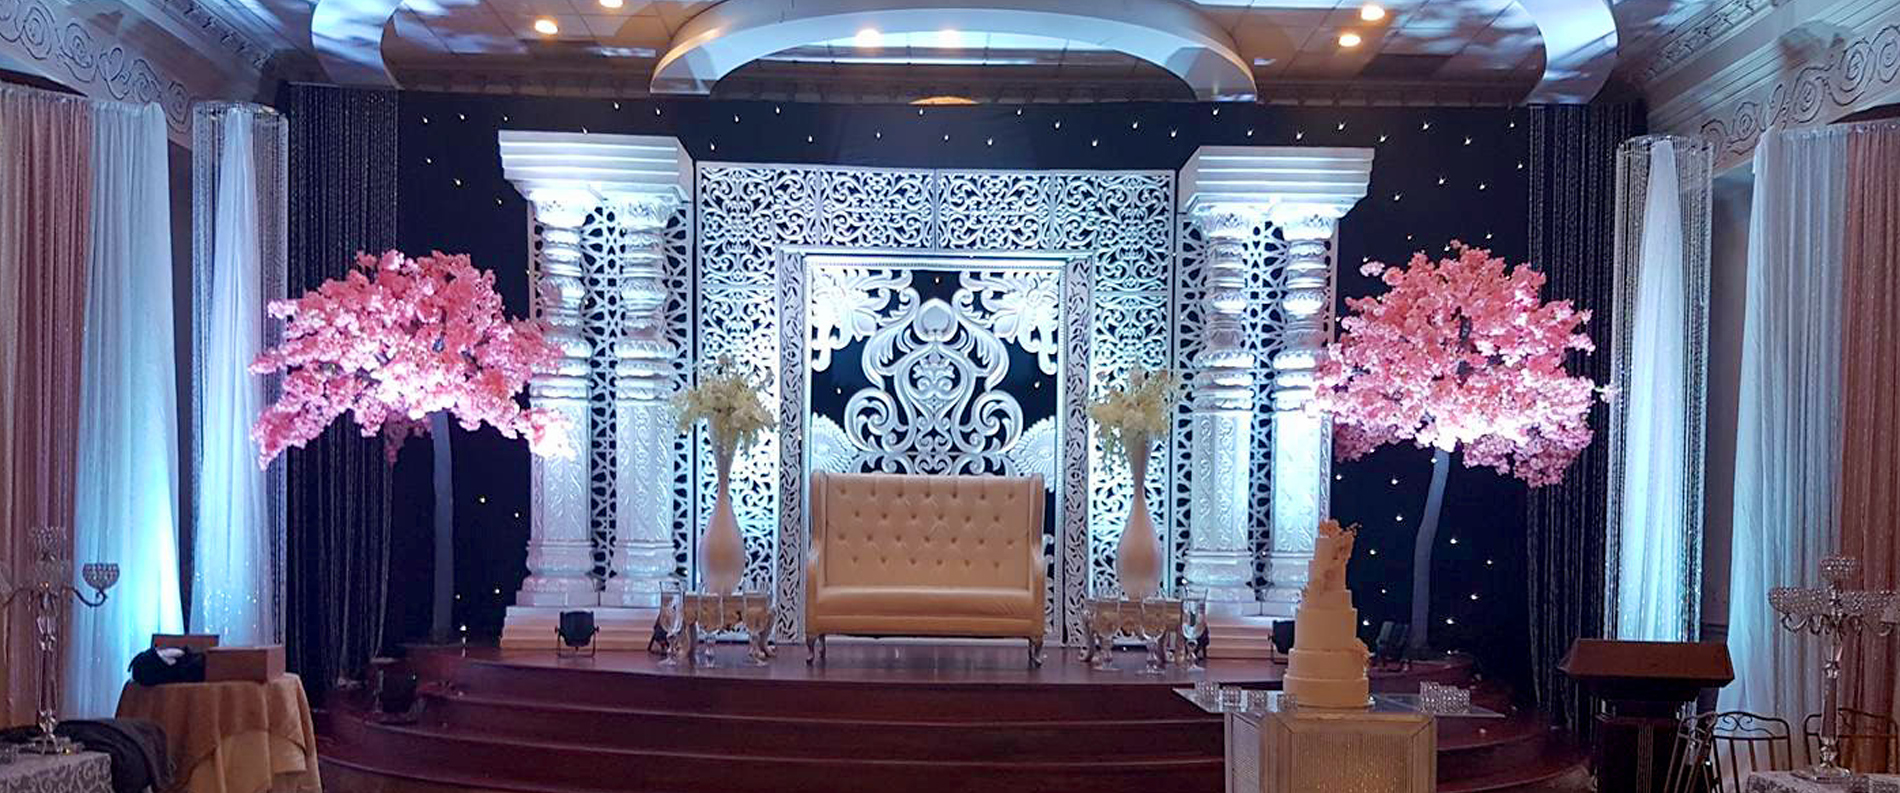 Payal Banquet Hall